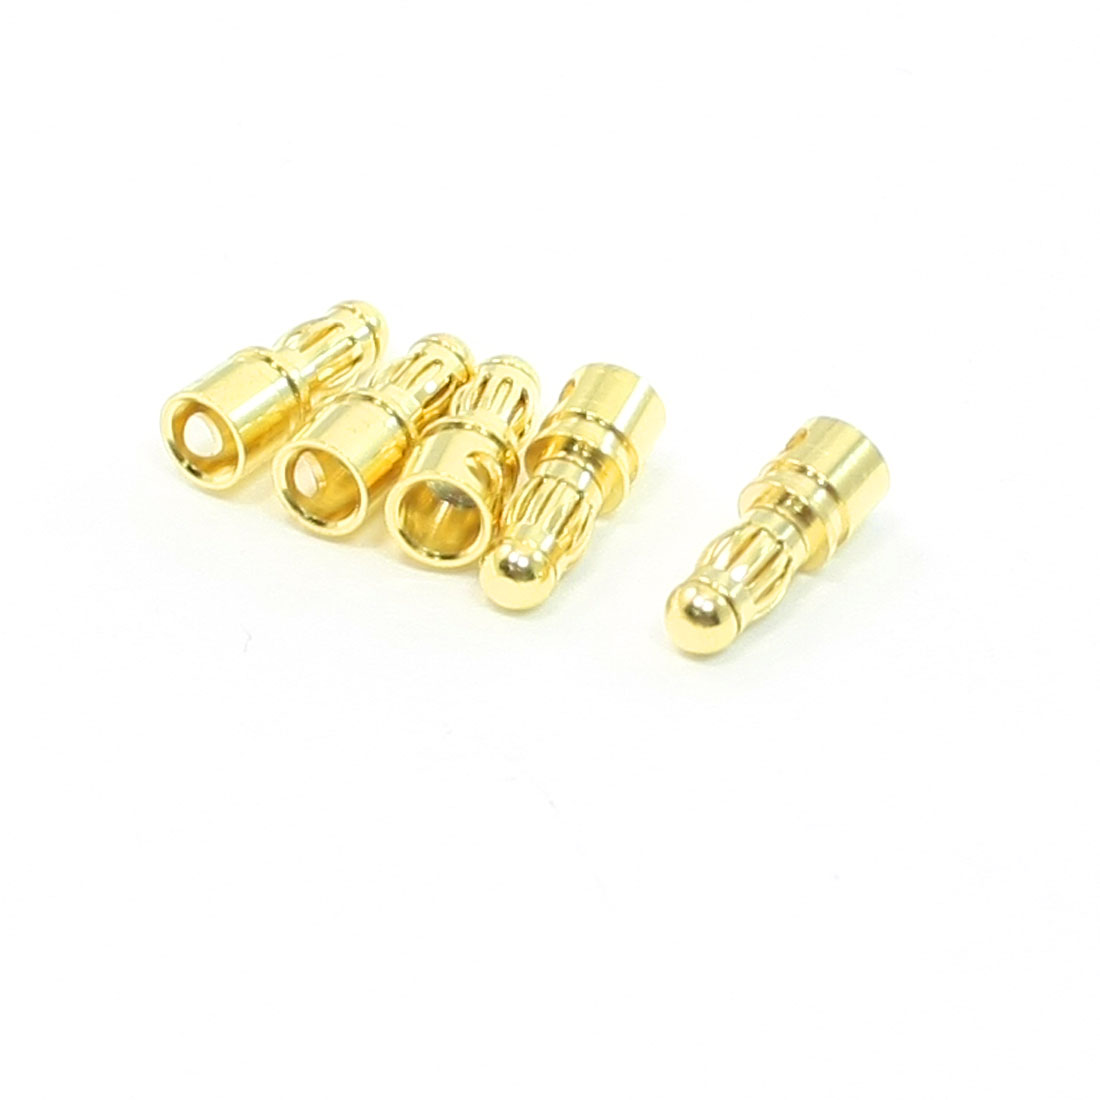 5 Pcs Gold Tone Metal RC Banana Bullet Plug Connector Male 3.5mm